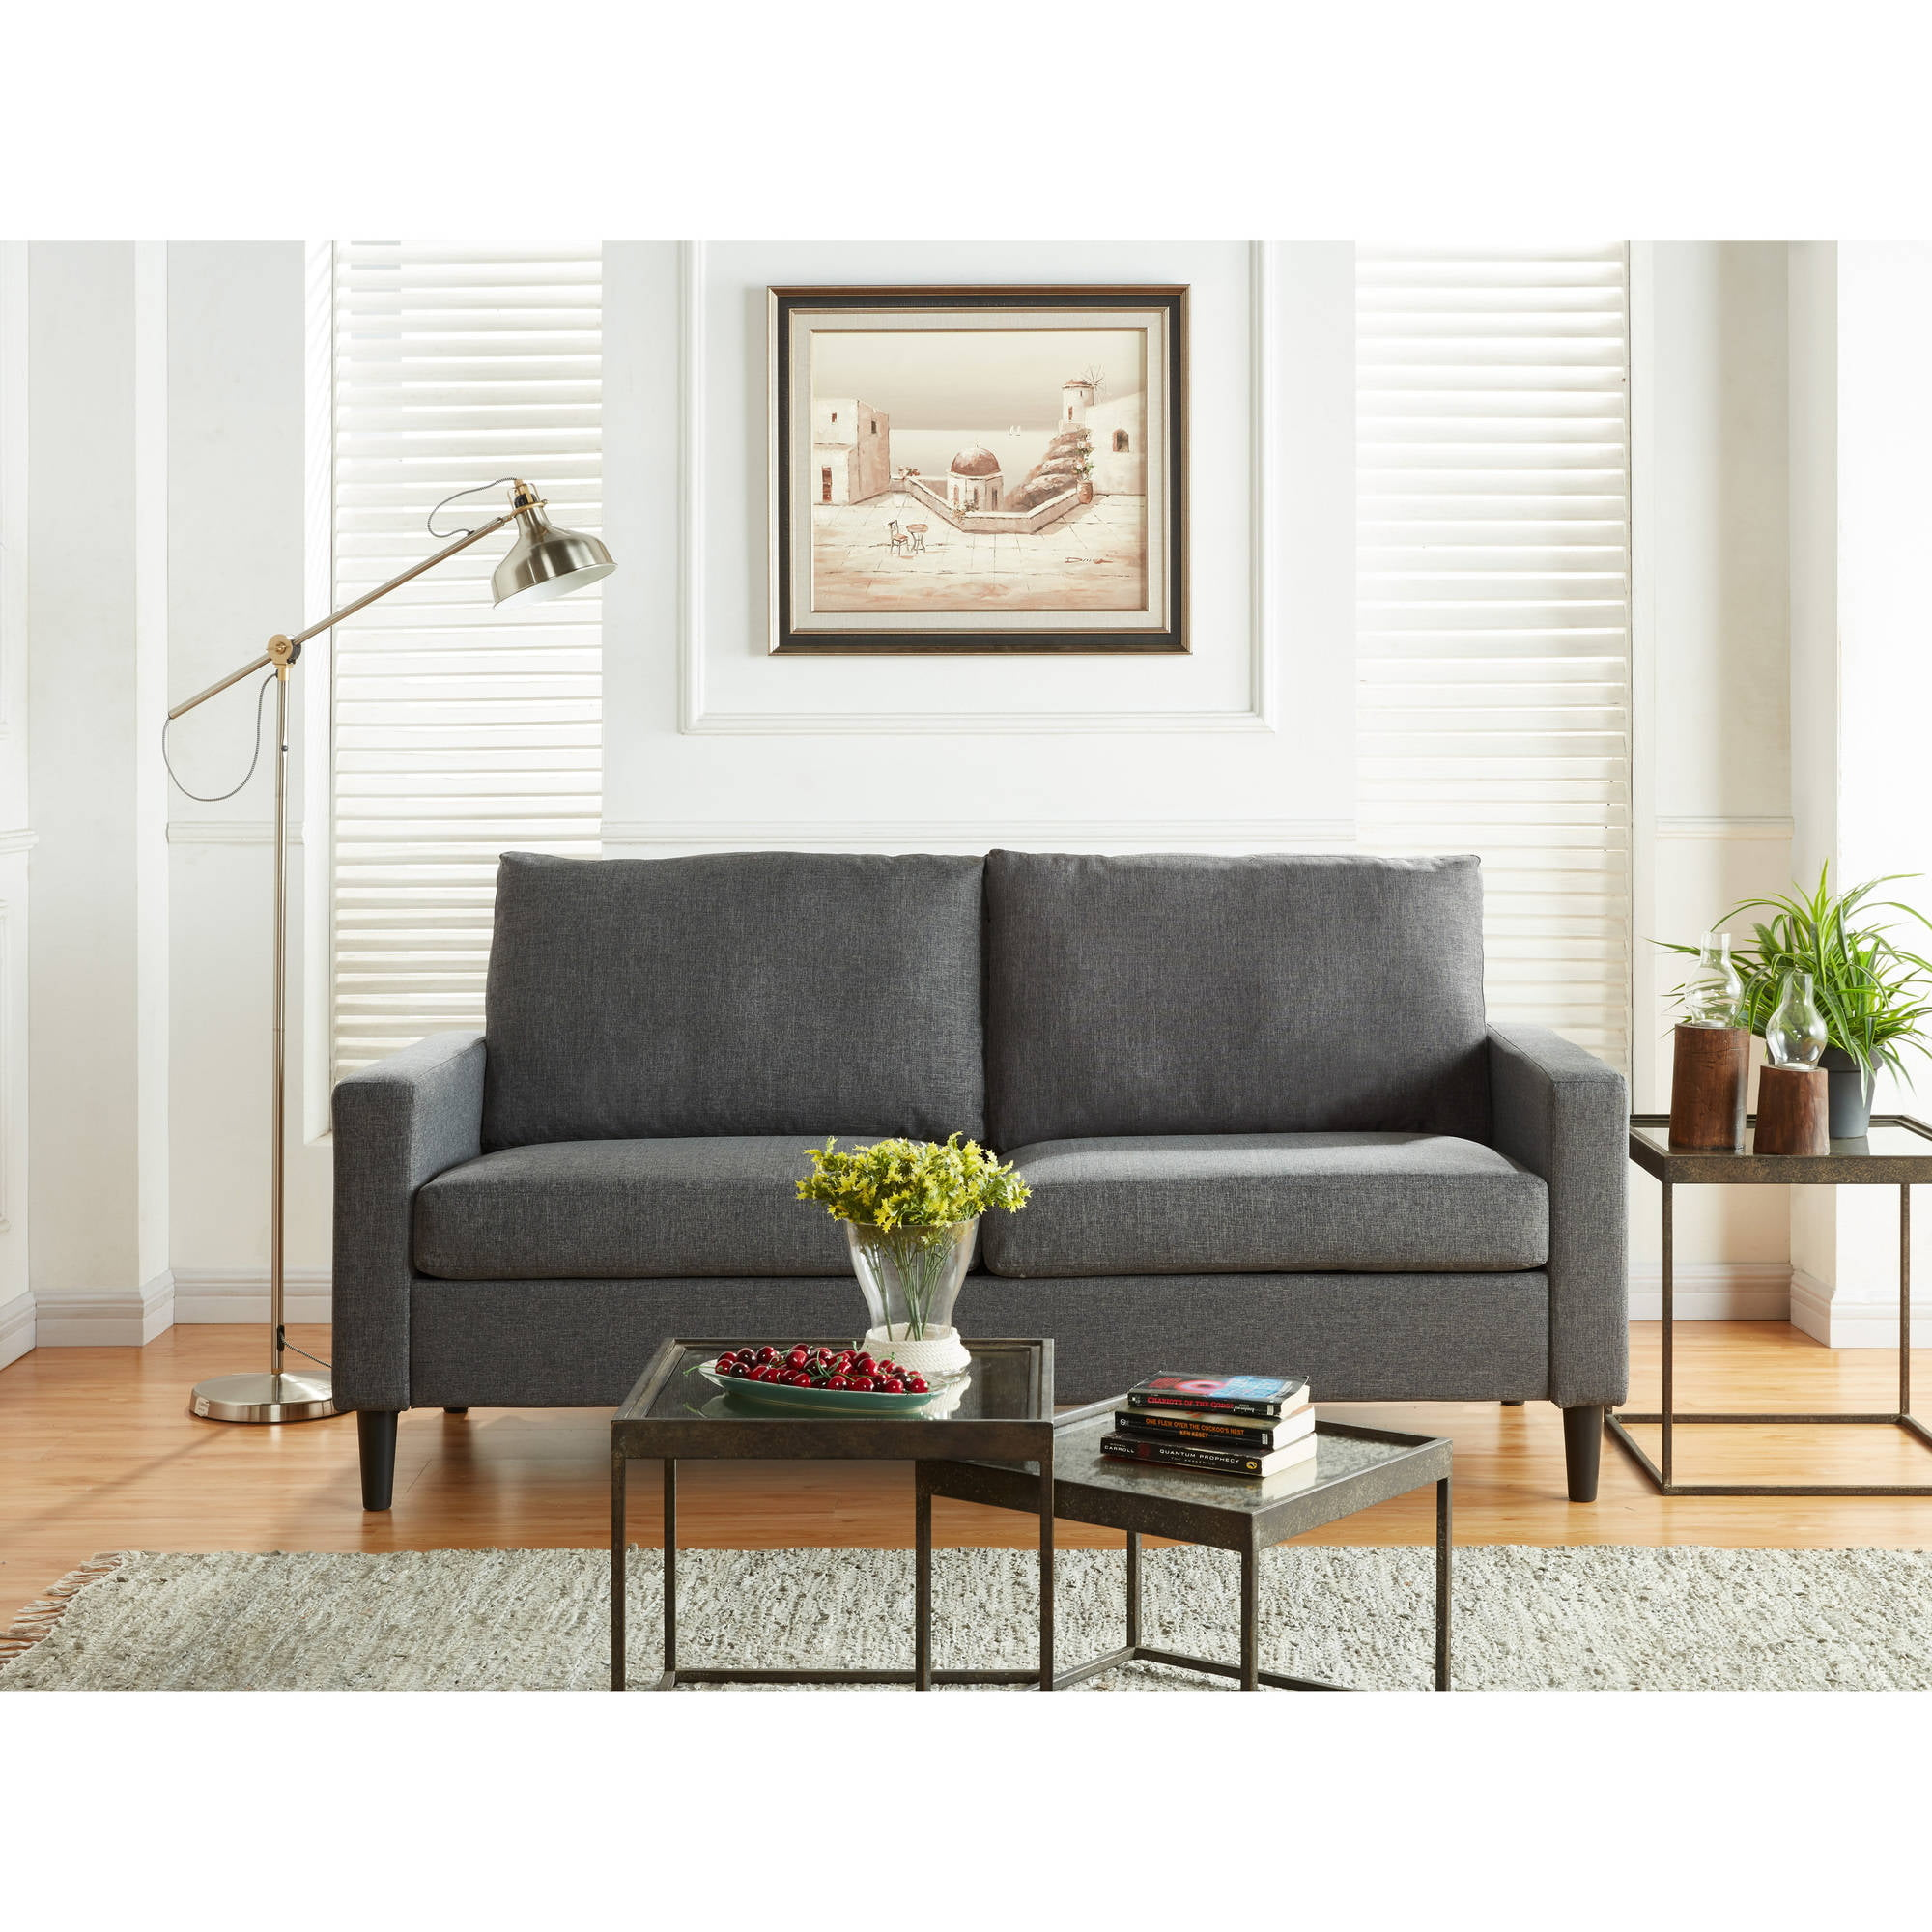 Superb Mainstays Apartment Sofa, Multiple Colors   Walmart.com